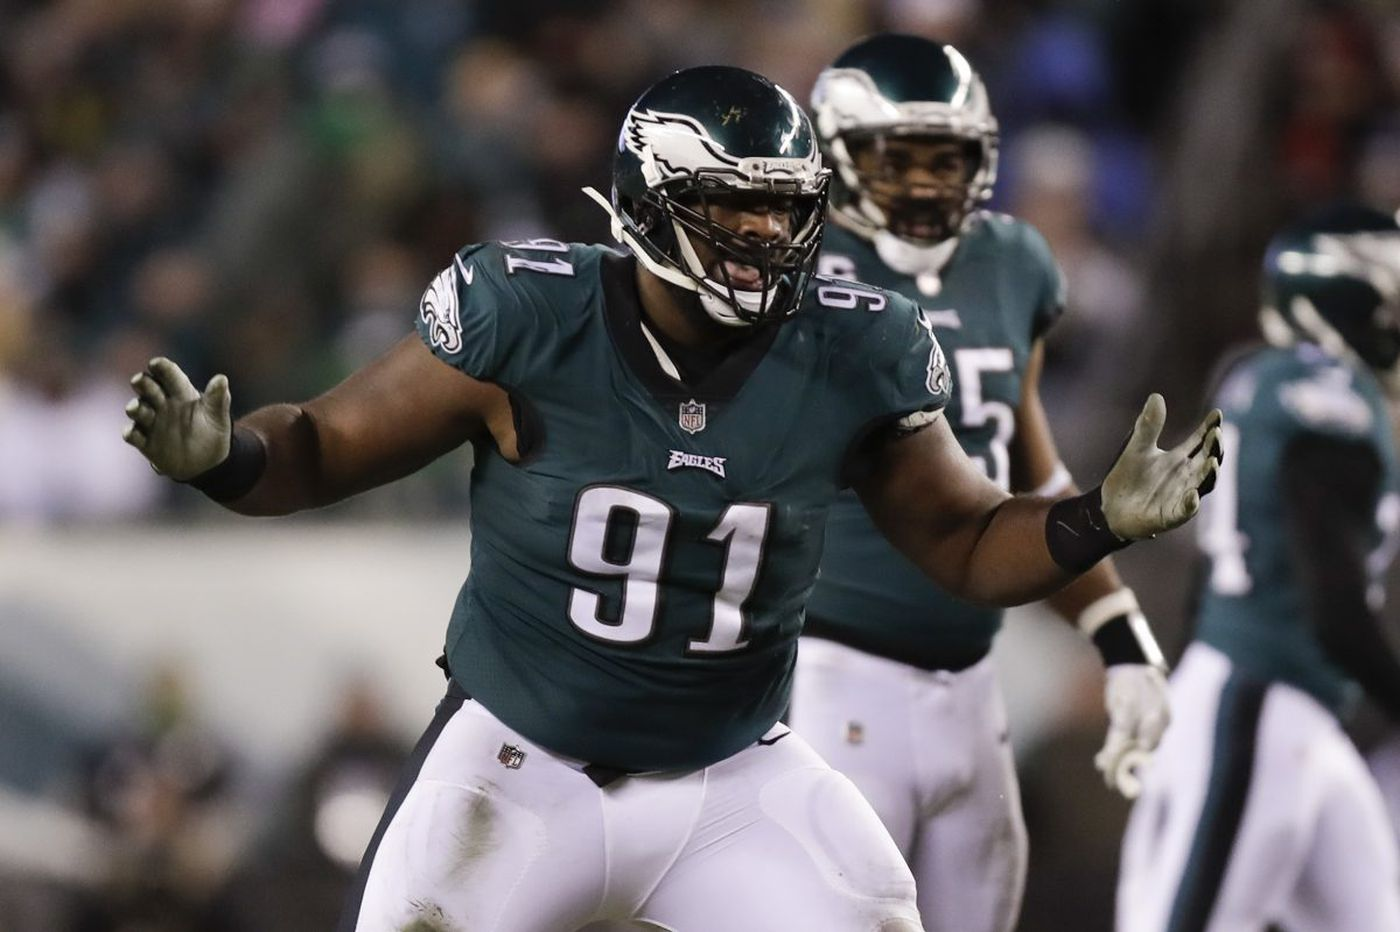 Five reasons the Eagles beat the Falcons | Paul Domowitch